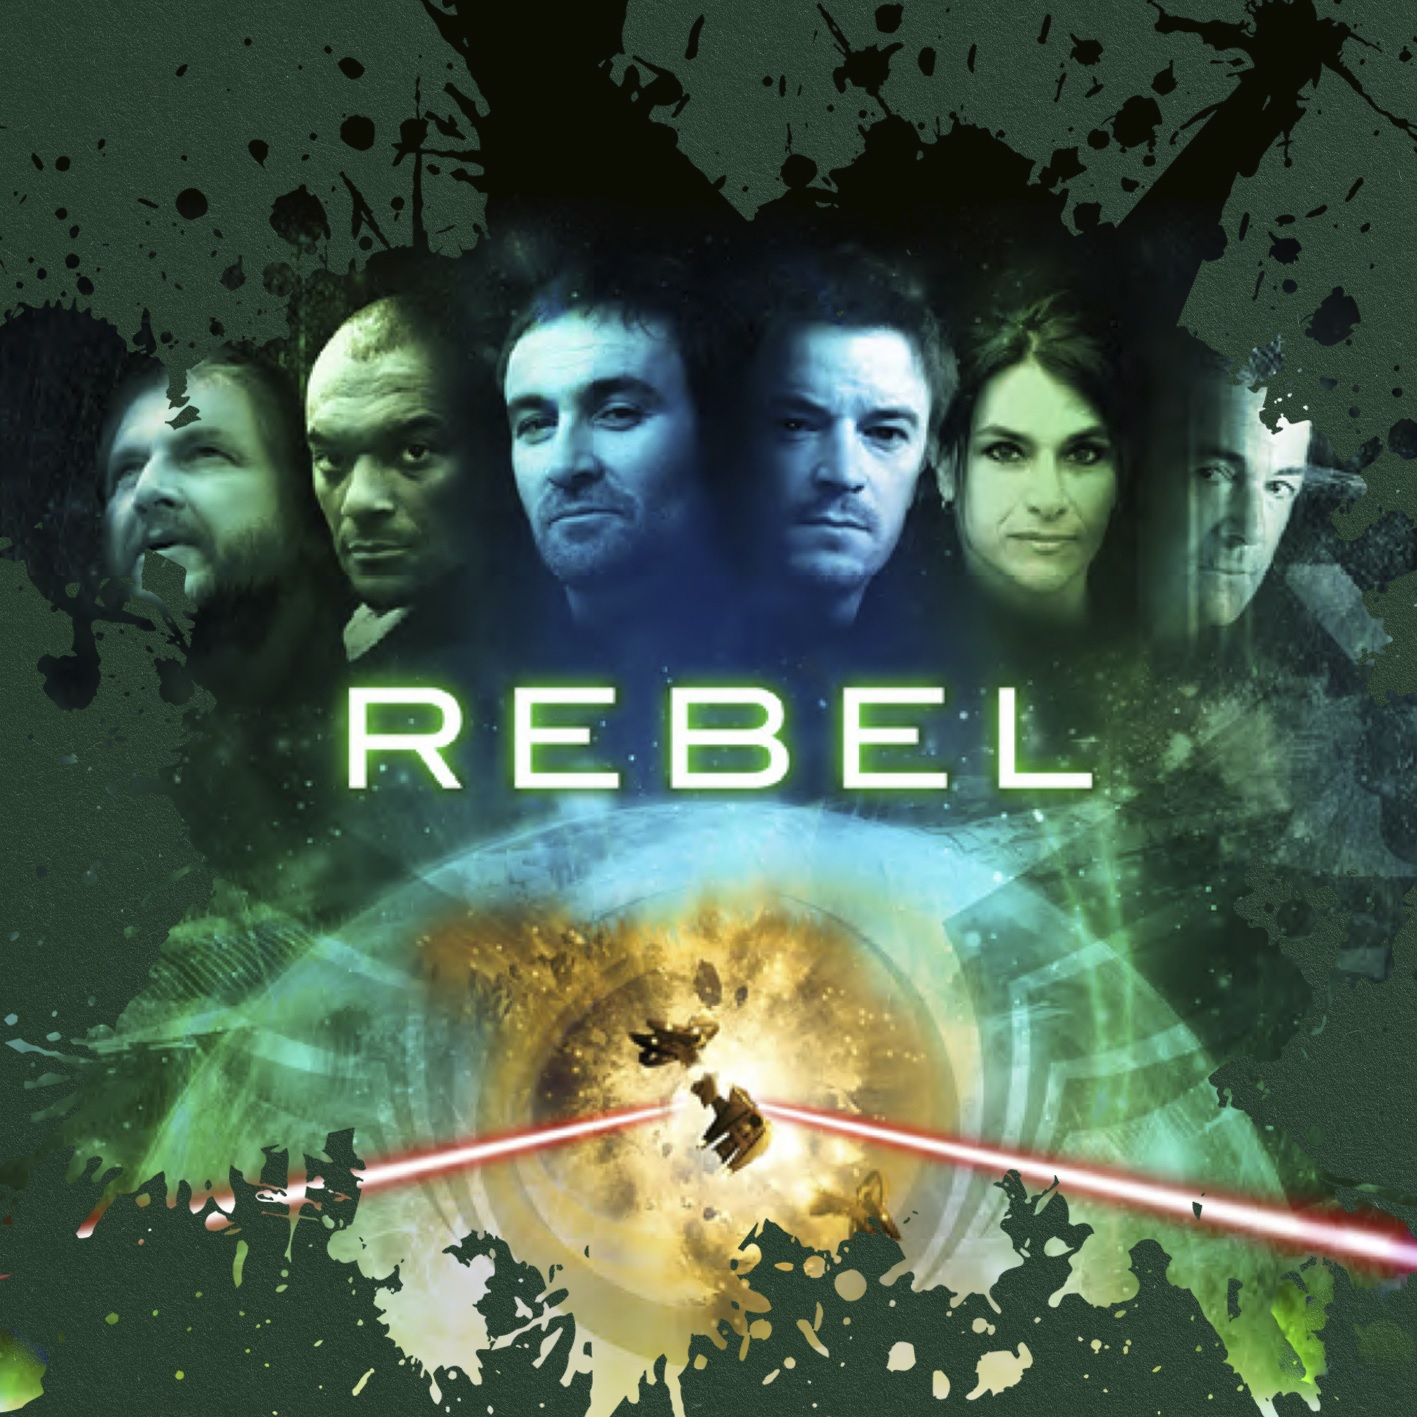 Enjoy Big Finish's Blake's 7: Rebel by Ben Aaronovitch for Free!